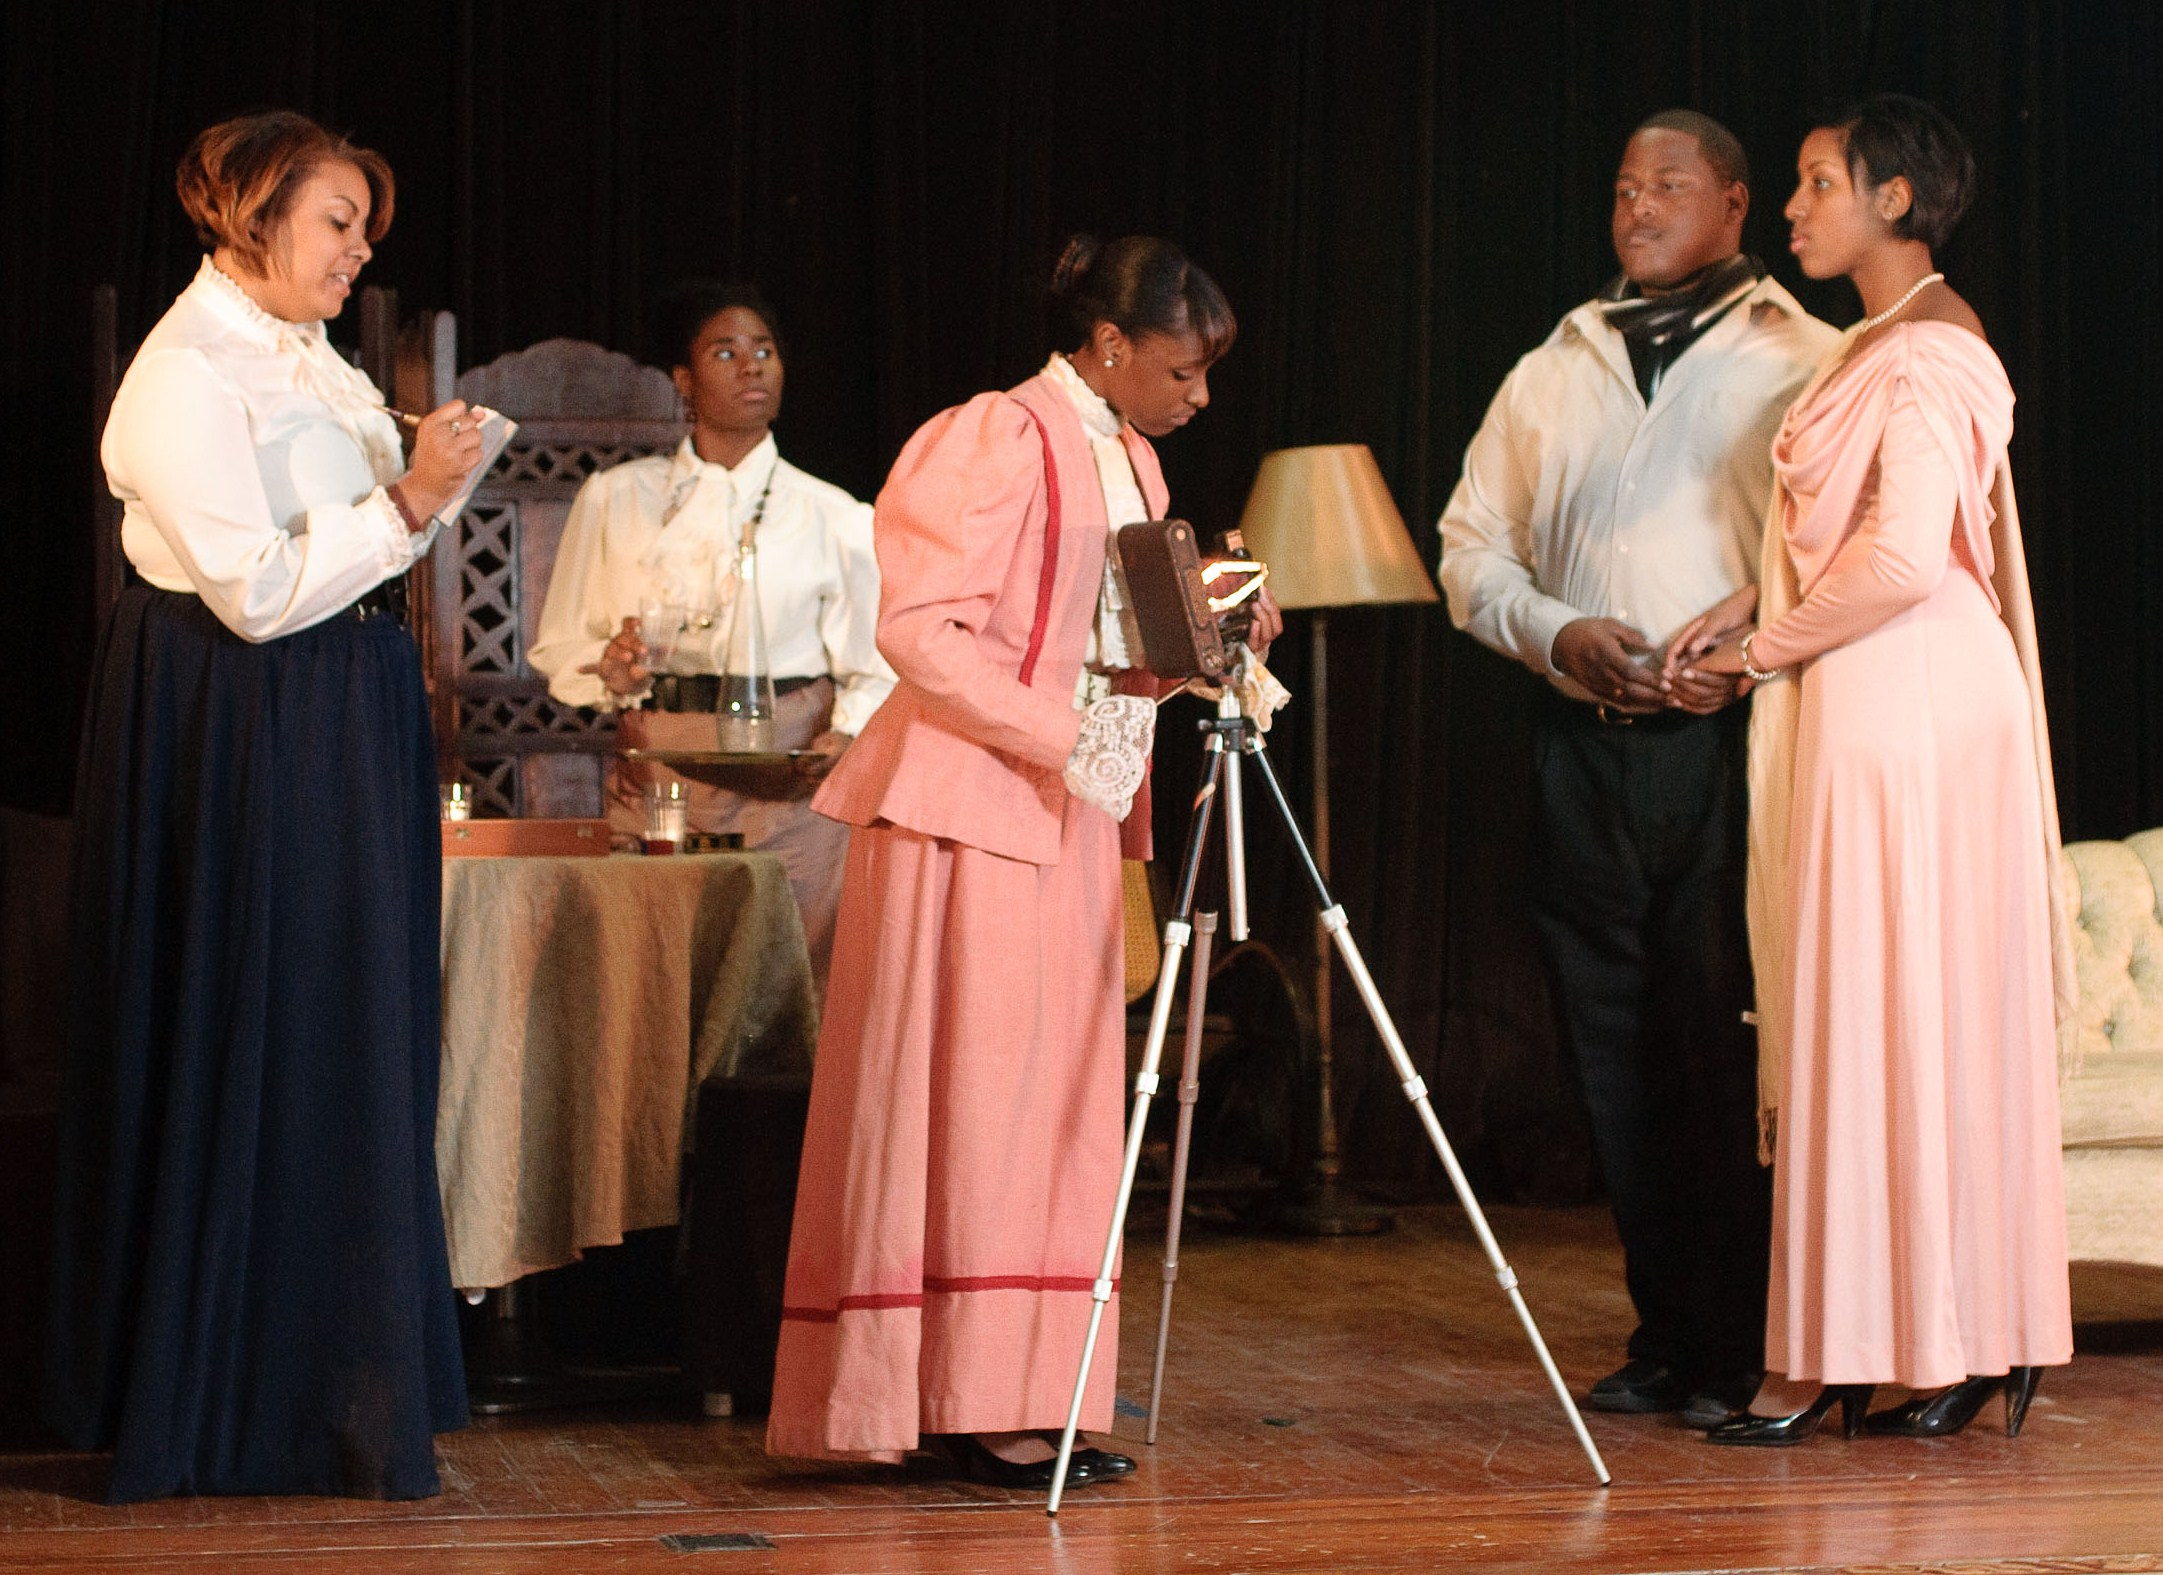 The Xavier University of Louisiana cast of  An Embarrassing Position , directed by Dara Rahming. From left to right, Alesia Sterling, Melissa D. Lewis, Kapria Joseph, Dedrian Hogan, and Crystal Morris.    (Photo by Irving Johnson III)